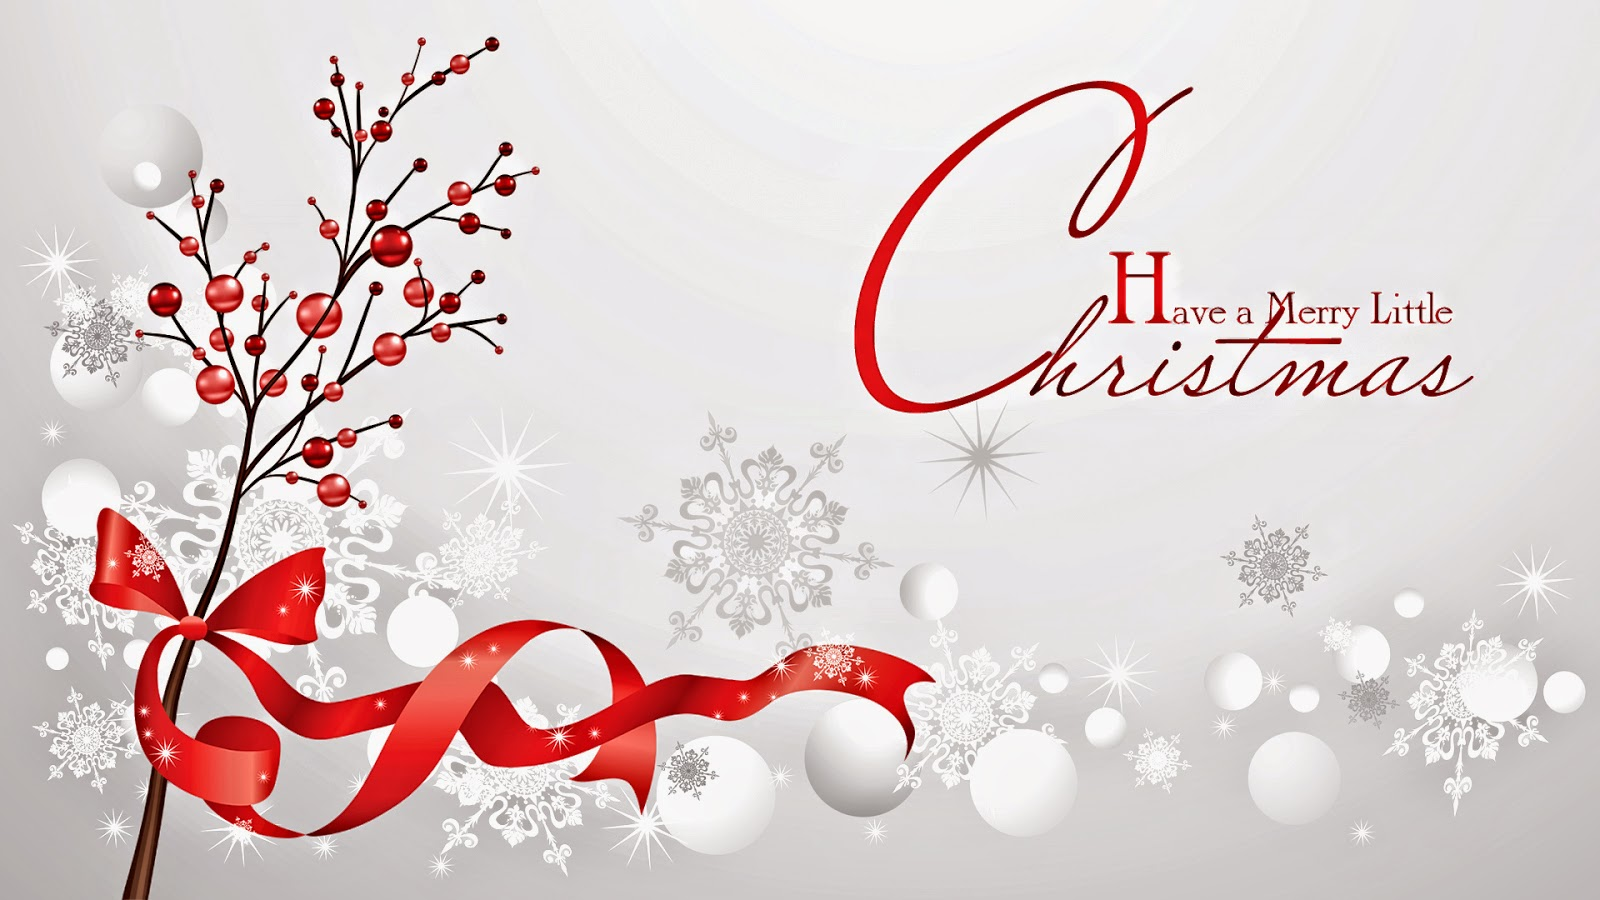 have-a-merry-little-christmas-greetings-wishes-text-red-with-white-background-image-picture.jpg